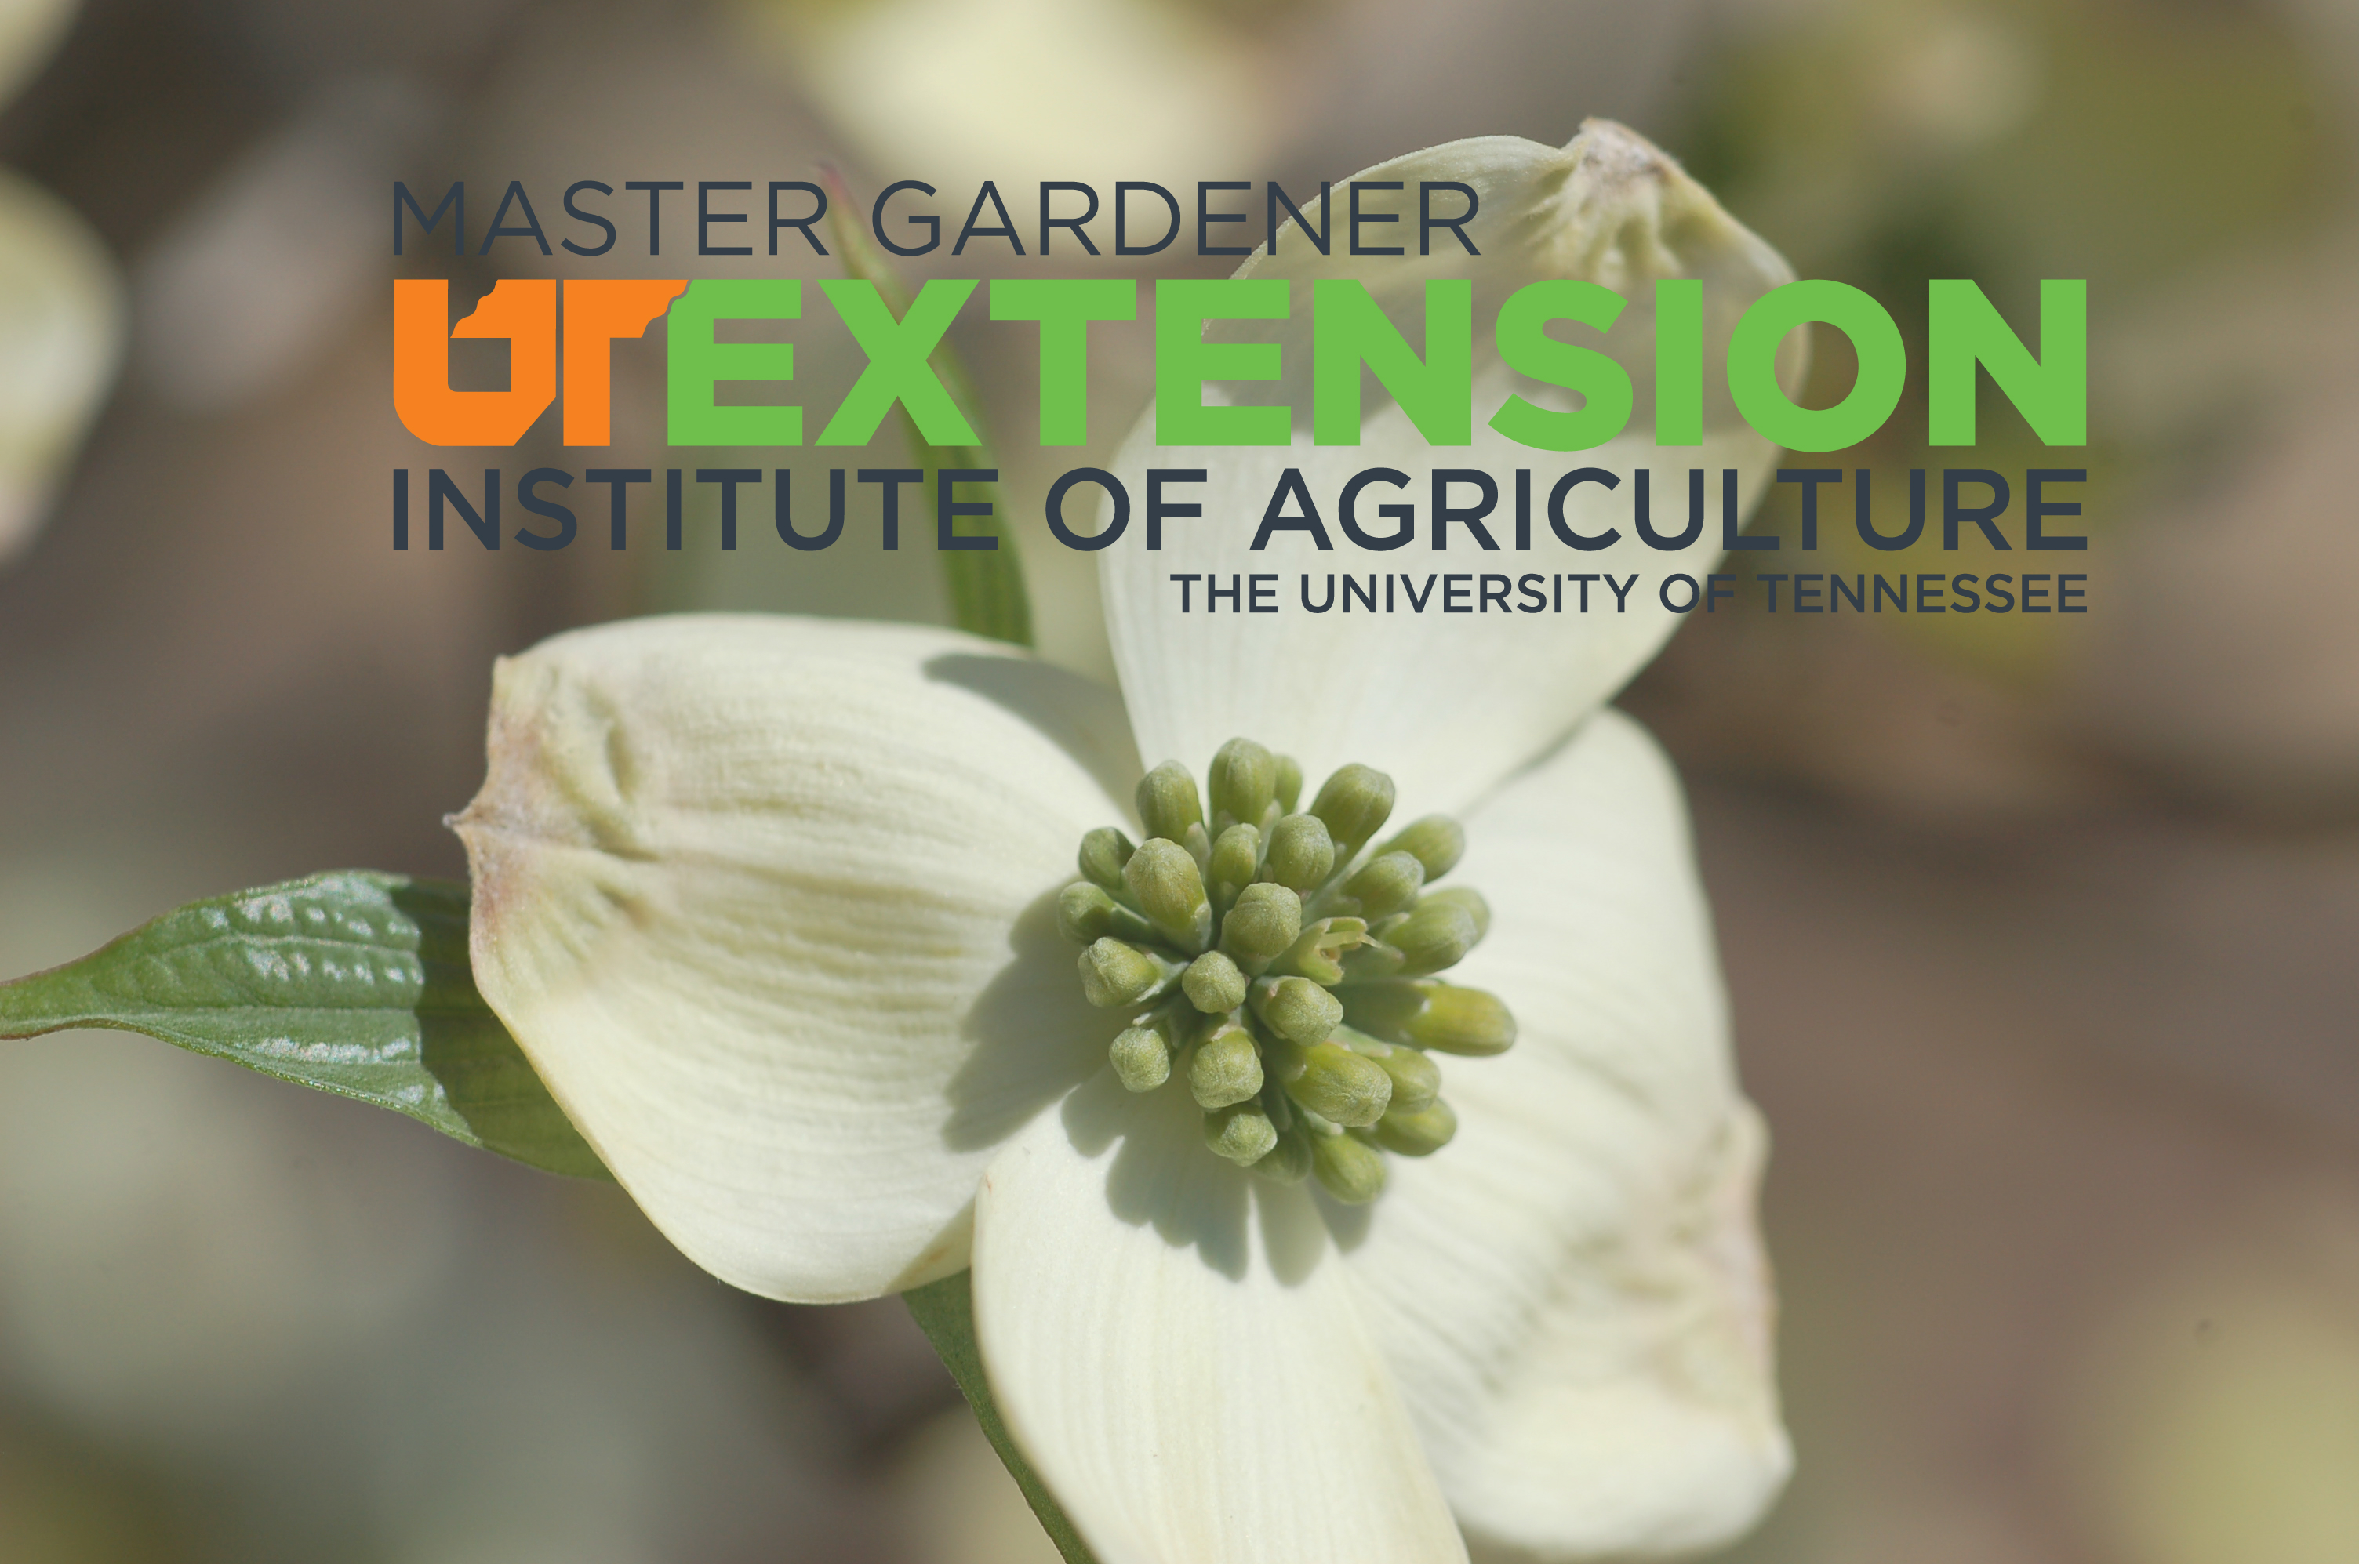 Interested In Hearing Perspectives On The Tennessee Master Gardener Program?